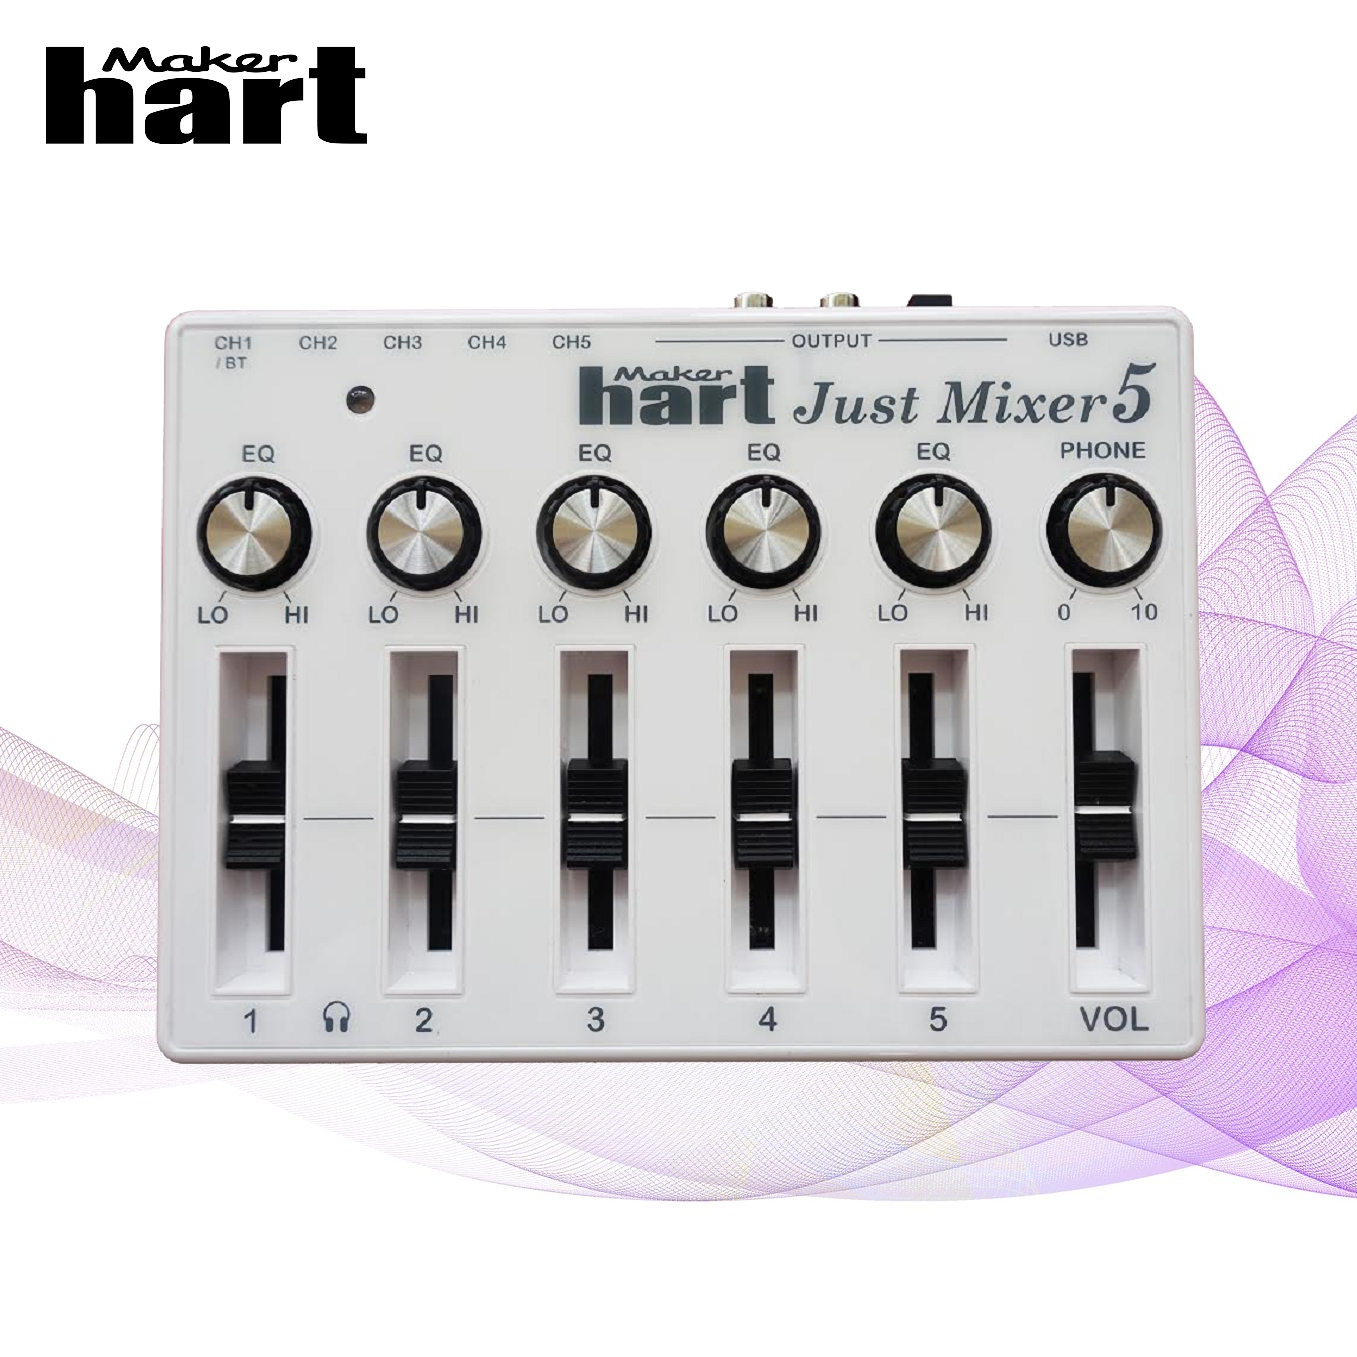 Just Mixer 2 Gold 120V 3.5mm mini mixer audio 3CH stereo USB audio mixer